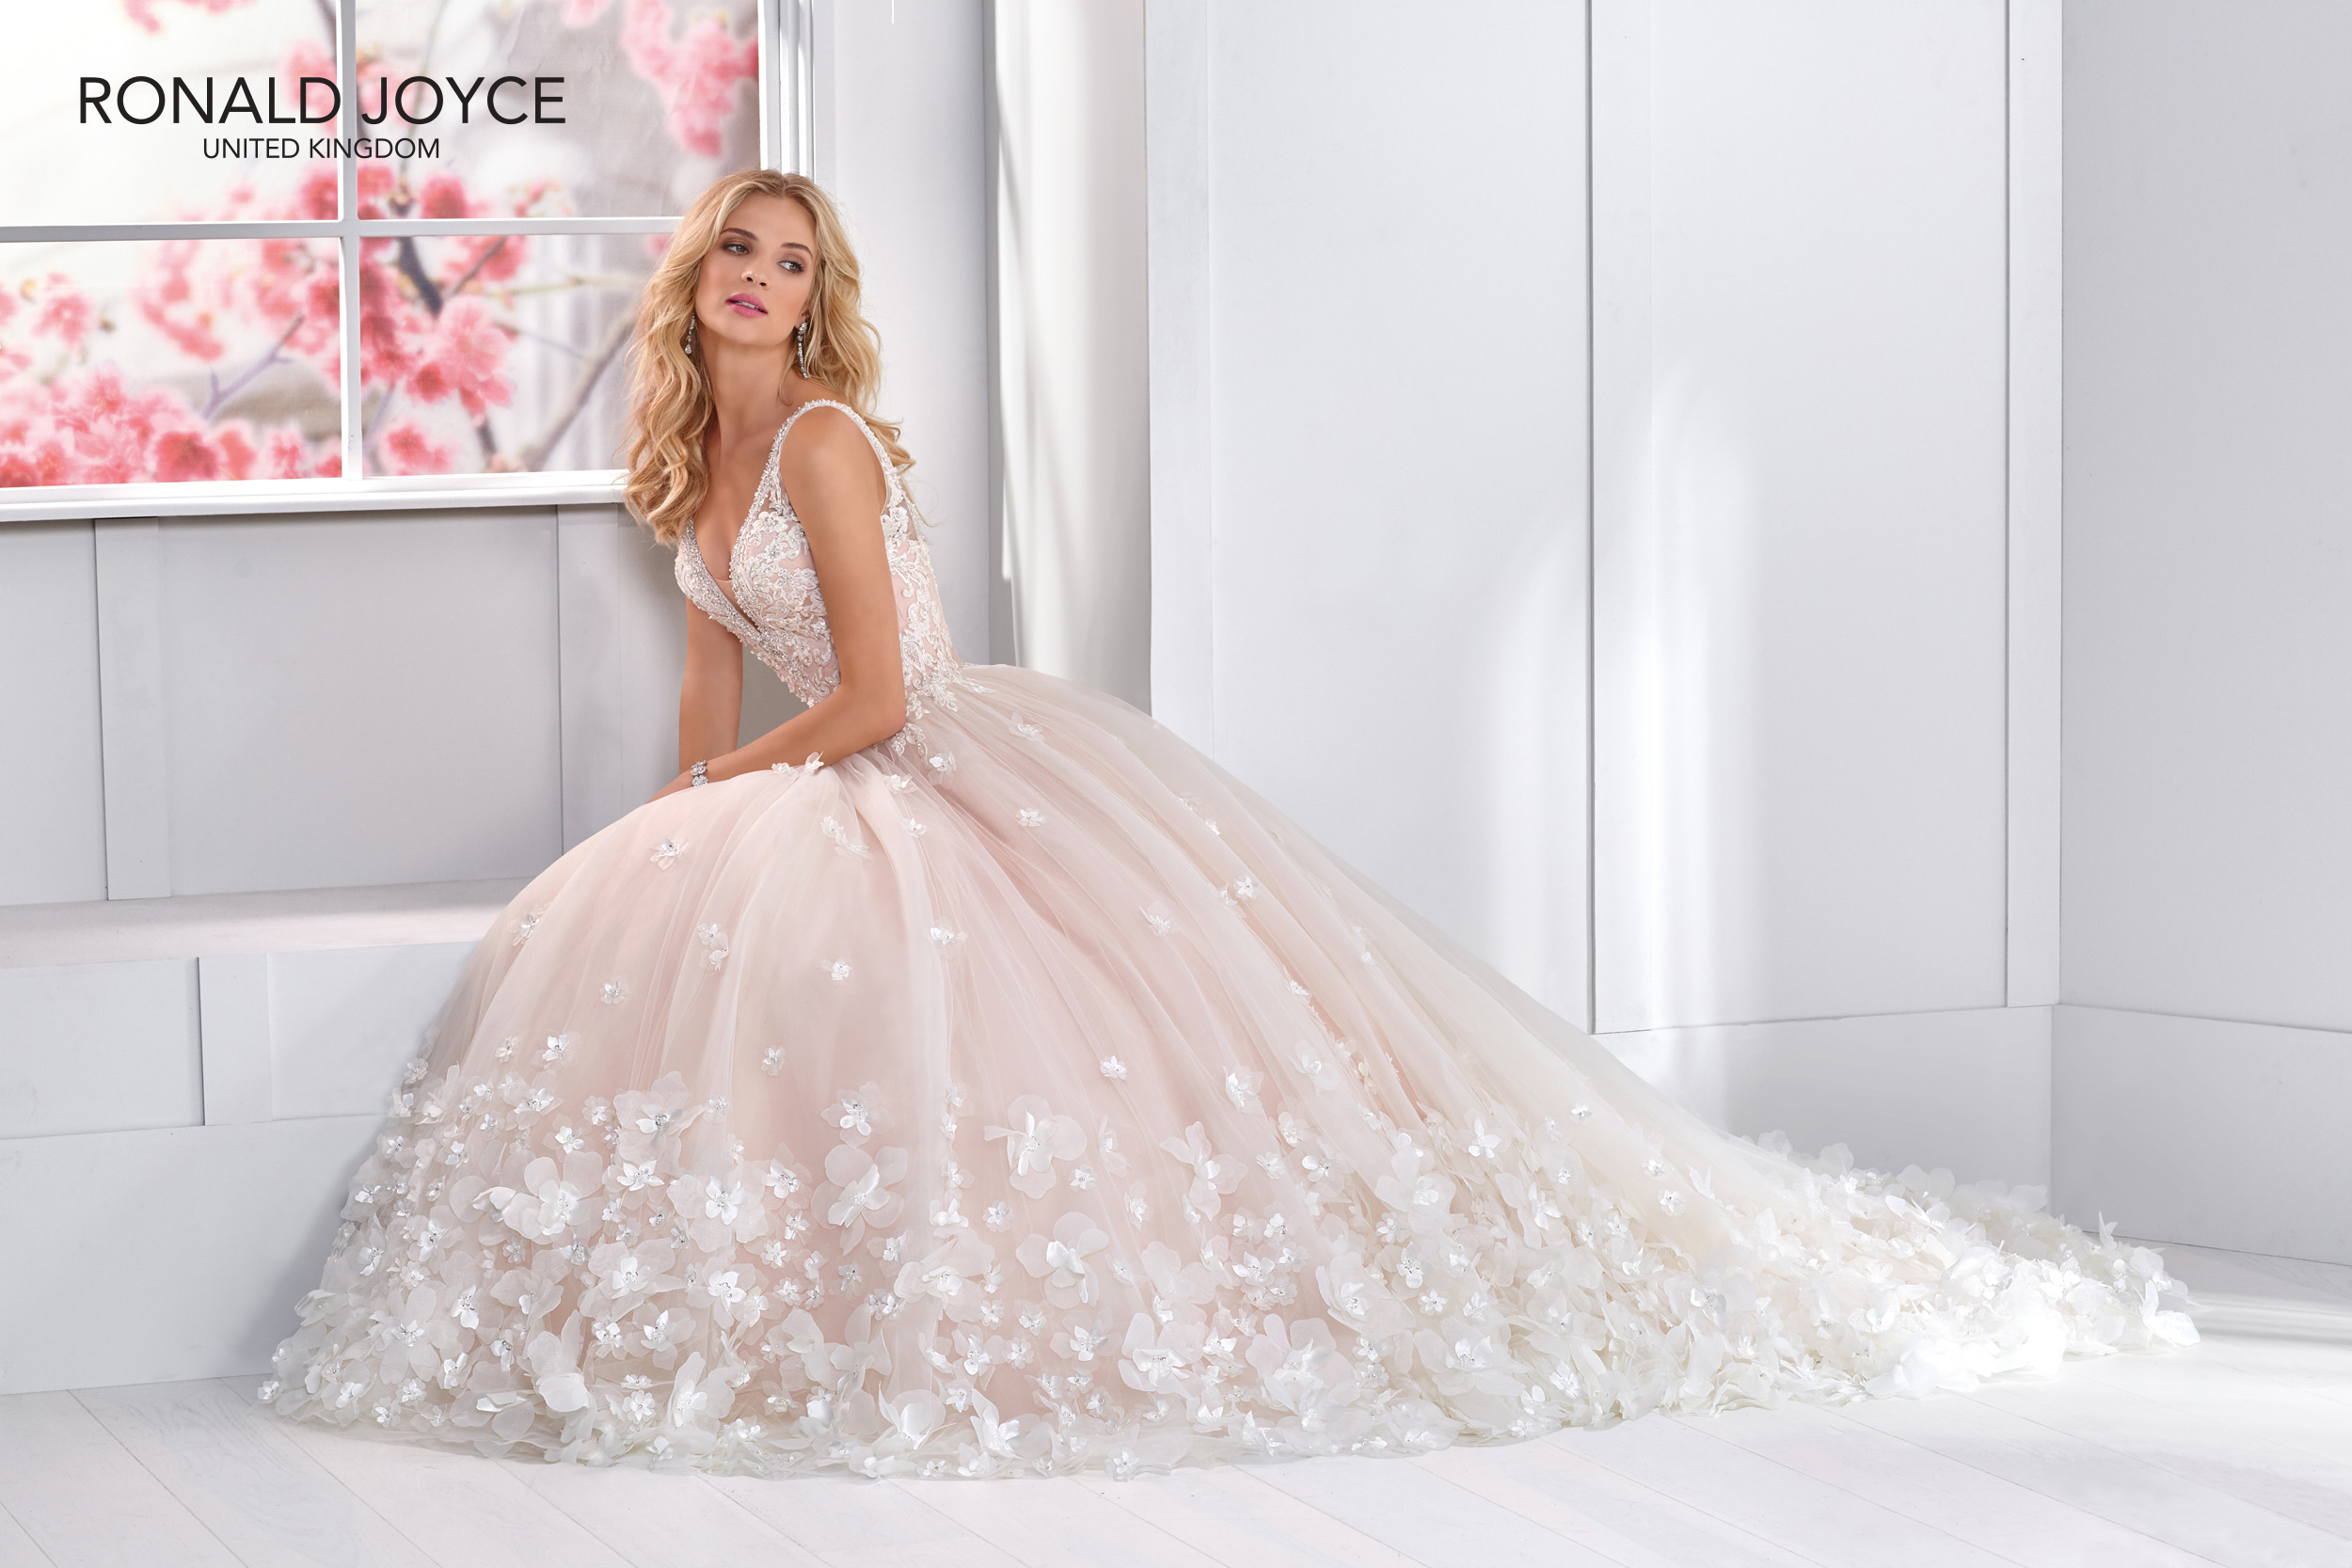 Cheap Wedding Dresses Plus Size Under 100 Dollars: Ronald Joyce 2019 Designer Weekend